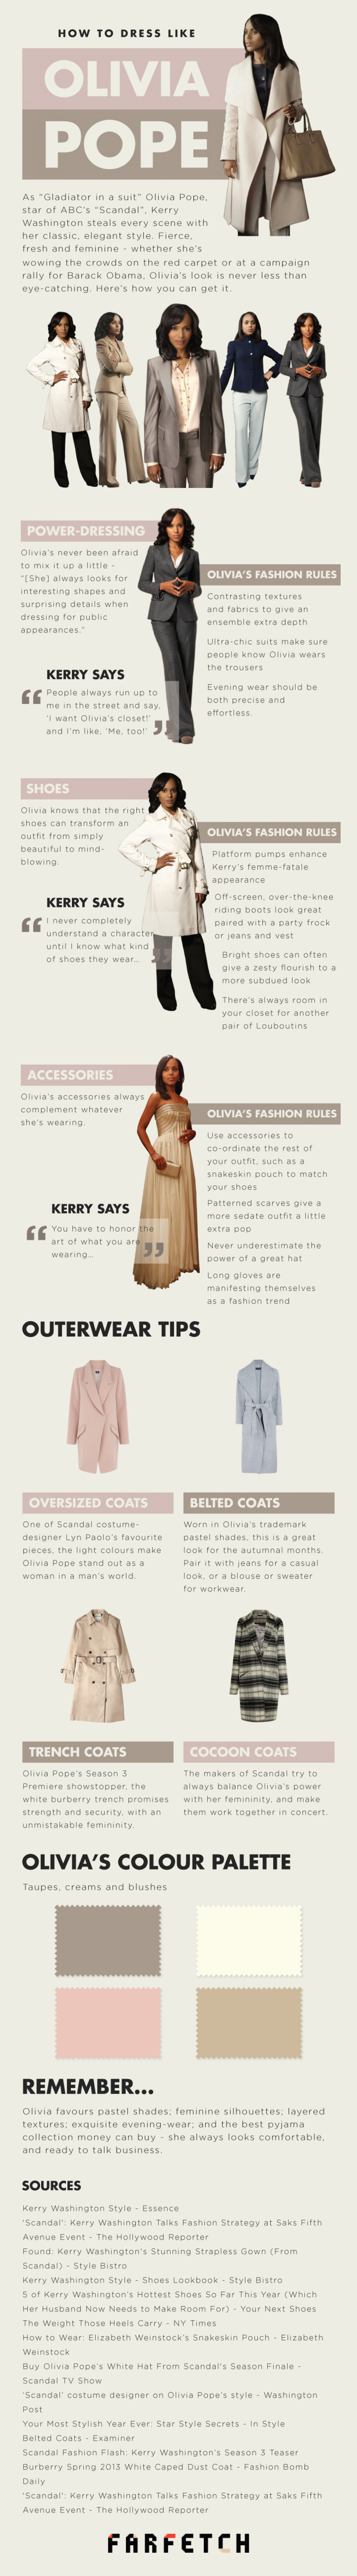 How to Dress Like Olivia Pope?  Infographic